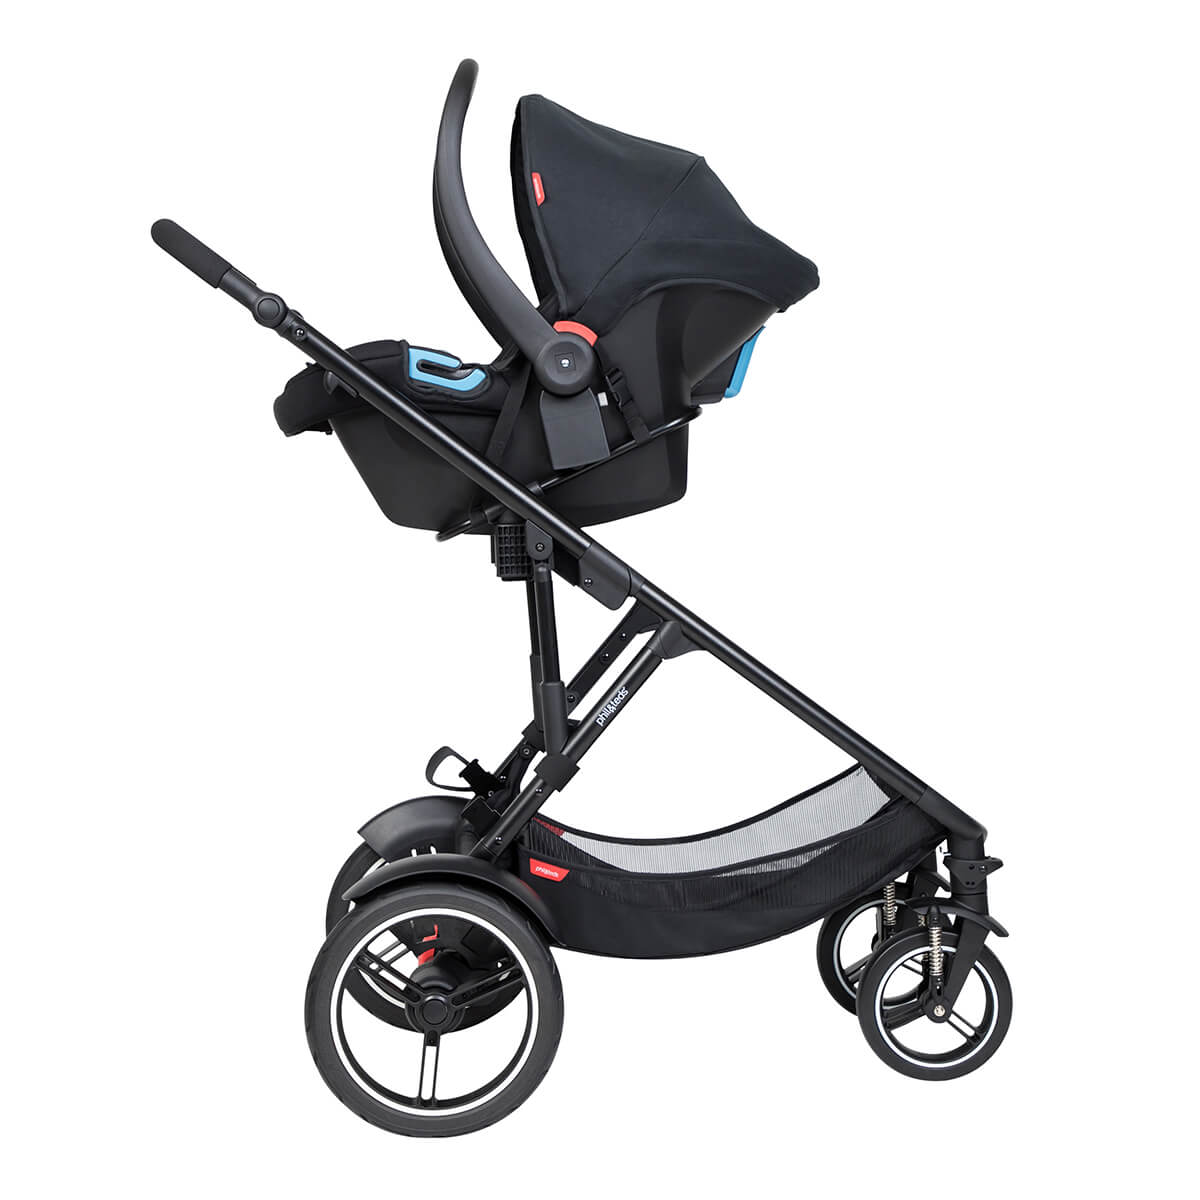 https://cdn.accentuate.io/4509916495949/19466203660482/philteds-voyager-buggy-with-travel-system-in-parent-facing-mode-v1626485593829.jpg?1200x1200